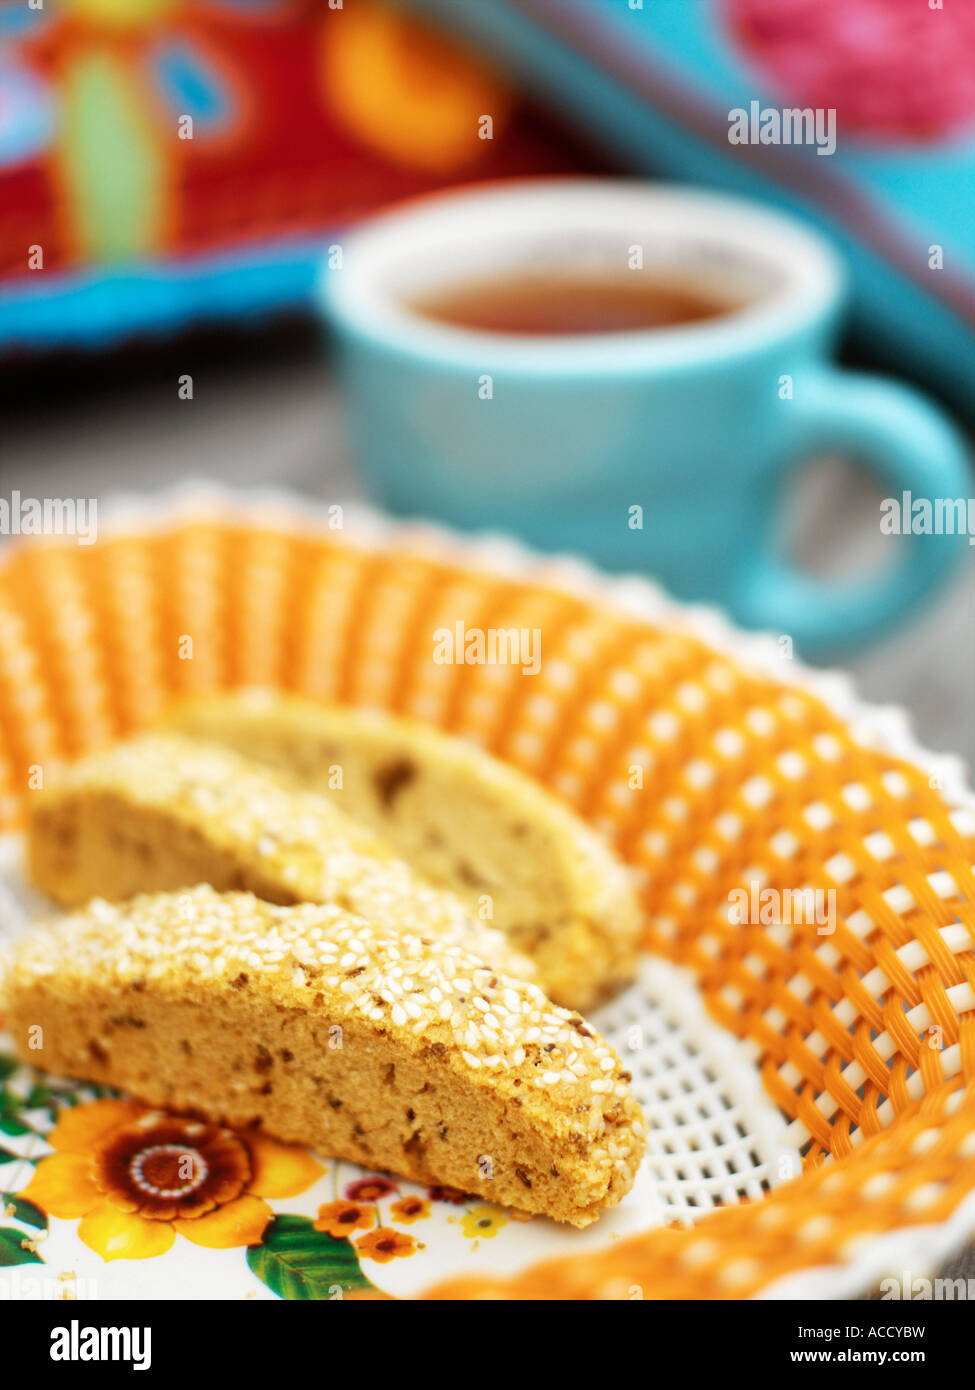 Plate with cookies and a cup in the background. - Stock Image